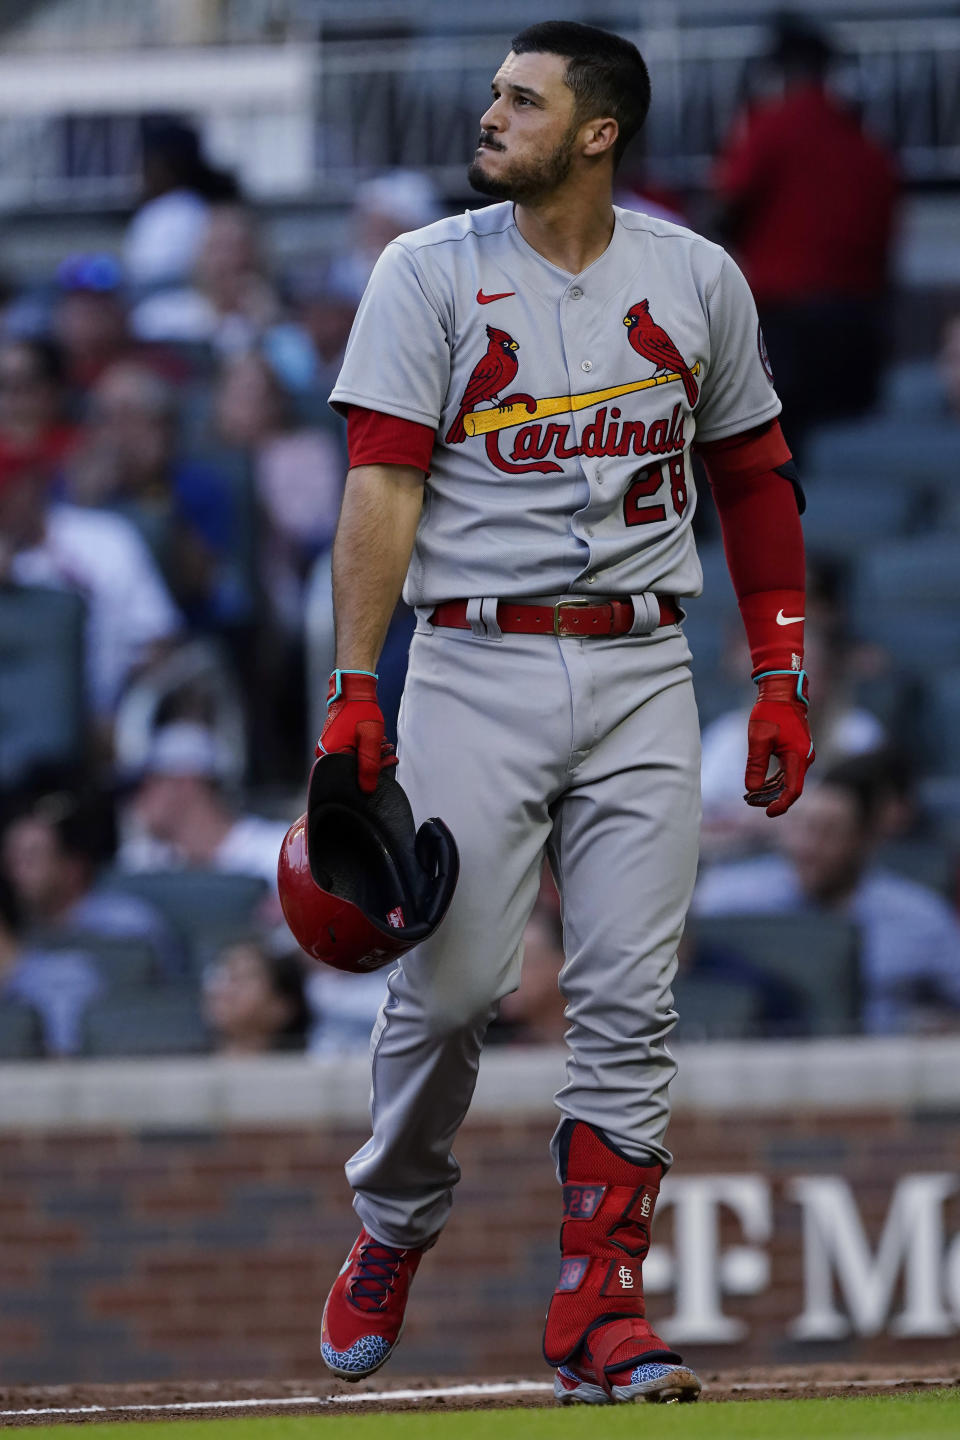 St. Louis Cardinals' Nolan Arenado walks back to the dugout after striking out to end the Cardinals' half of the fourth inning of a baseball game against the Atlanta Braves on Thursday, June 17, 2021, in Atlanta. (AP Photo/John Bazemore)